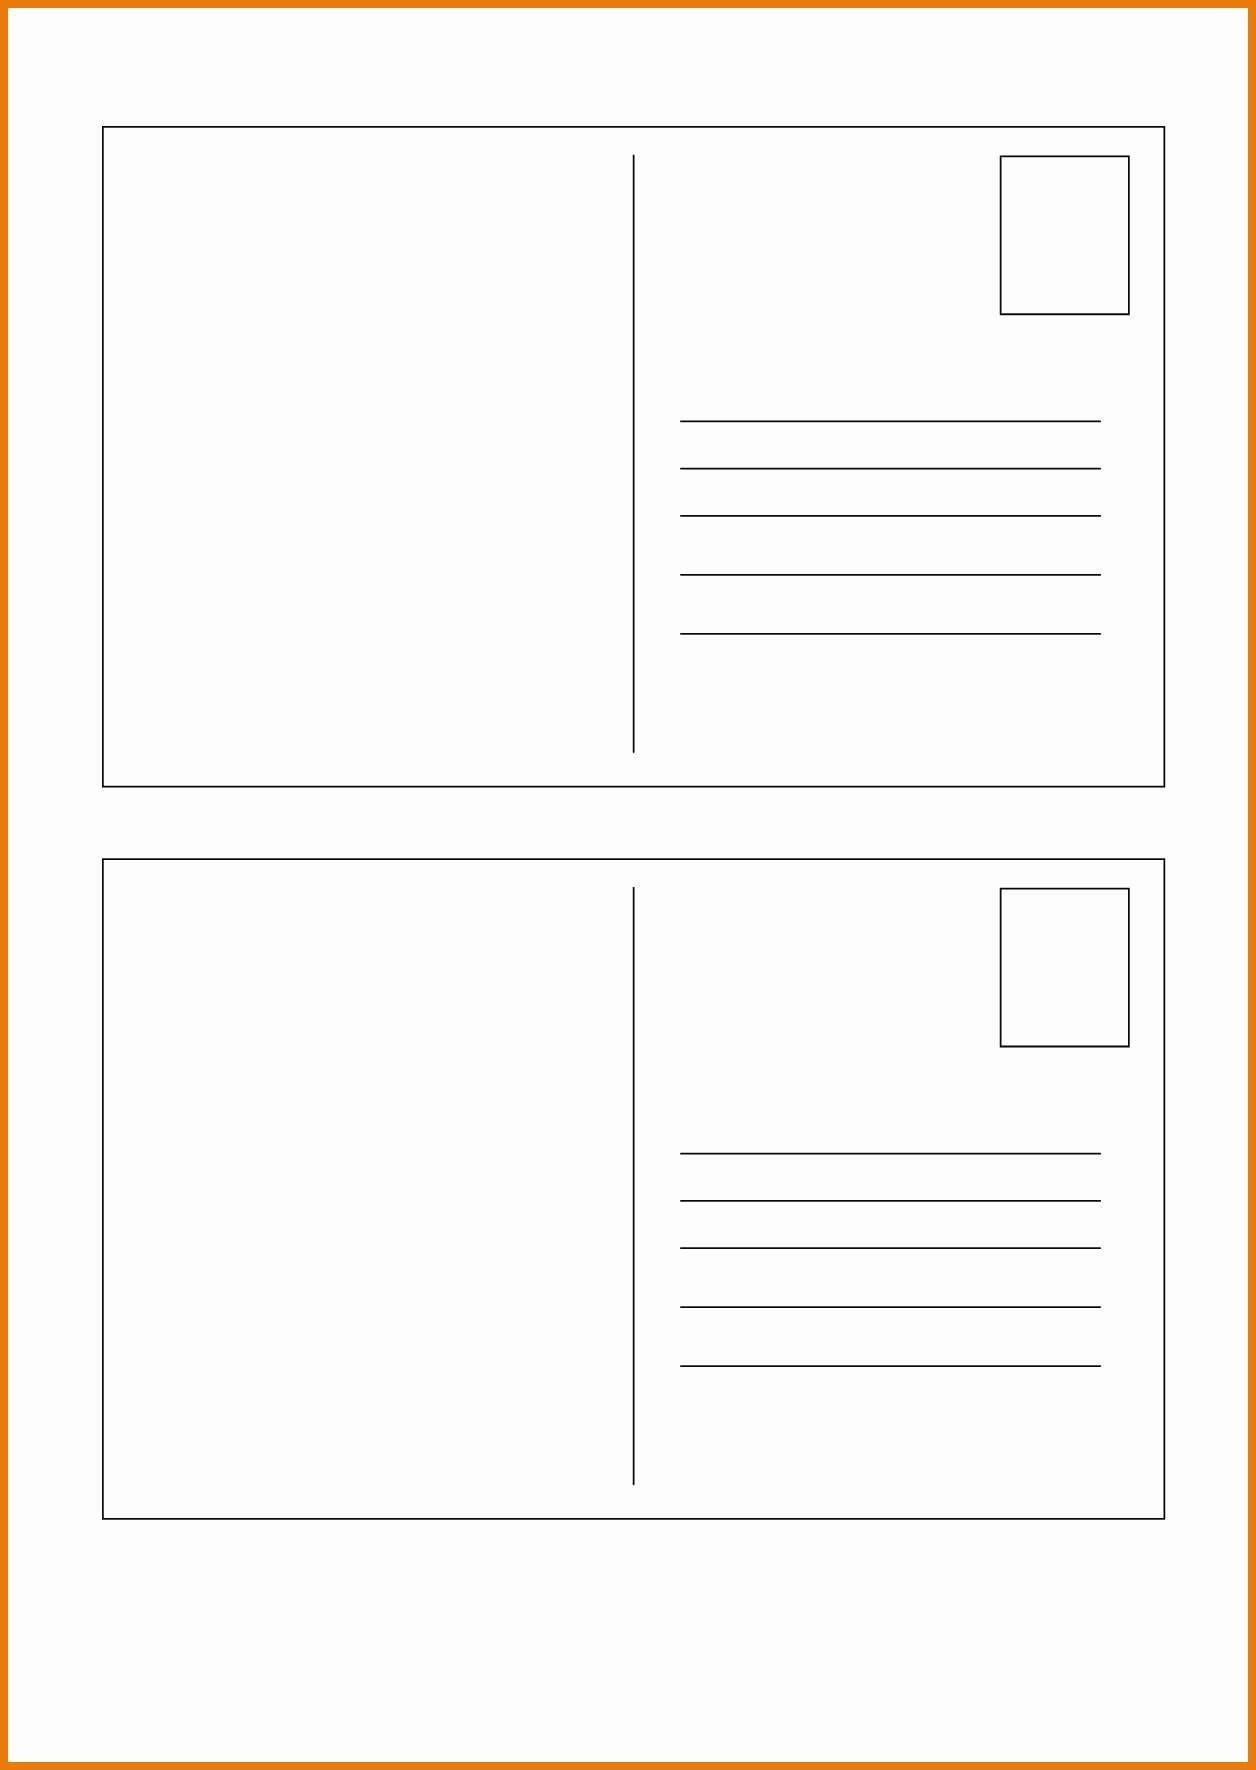 Postcard Template for Word Awesome Best Free Postcard Templates for Microsoft Word